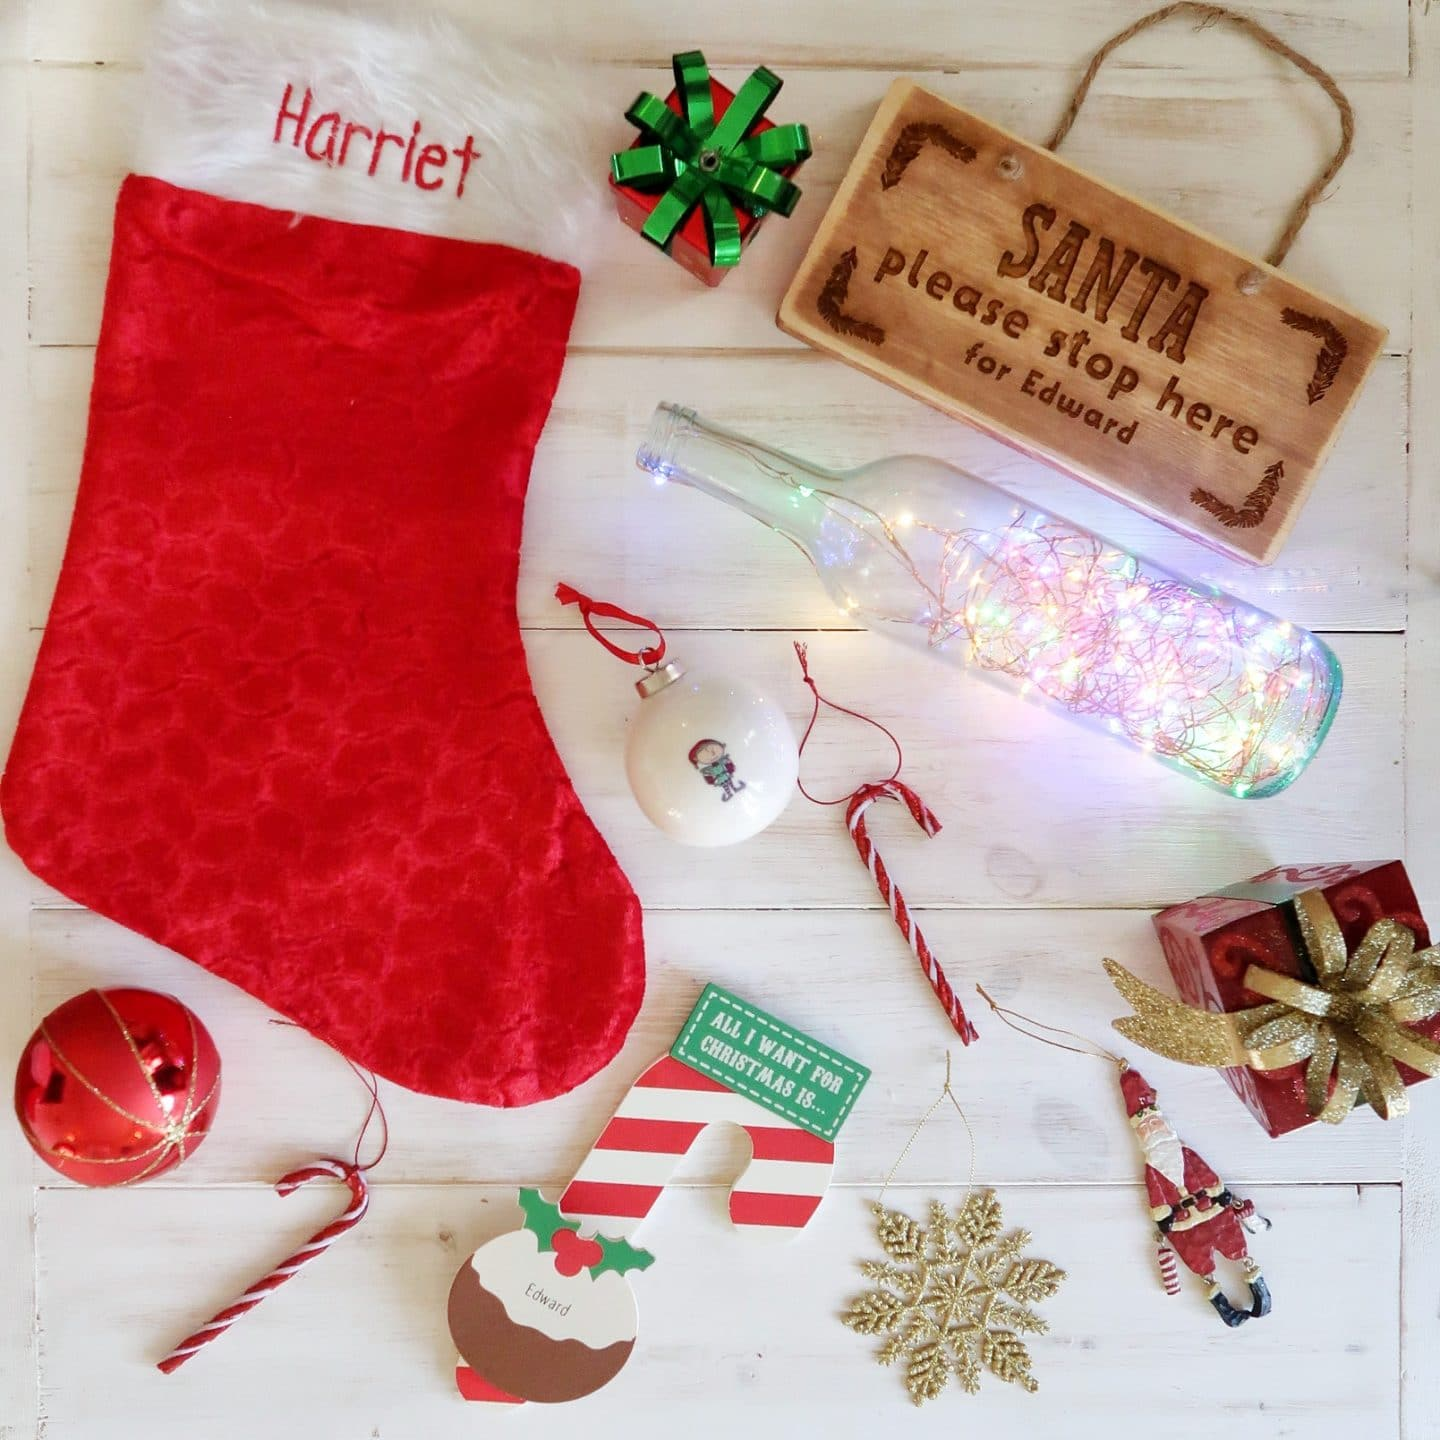 A selection of personalised Christmas Keepsakes, including a stocking, baubles and Santa stop here sign.